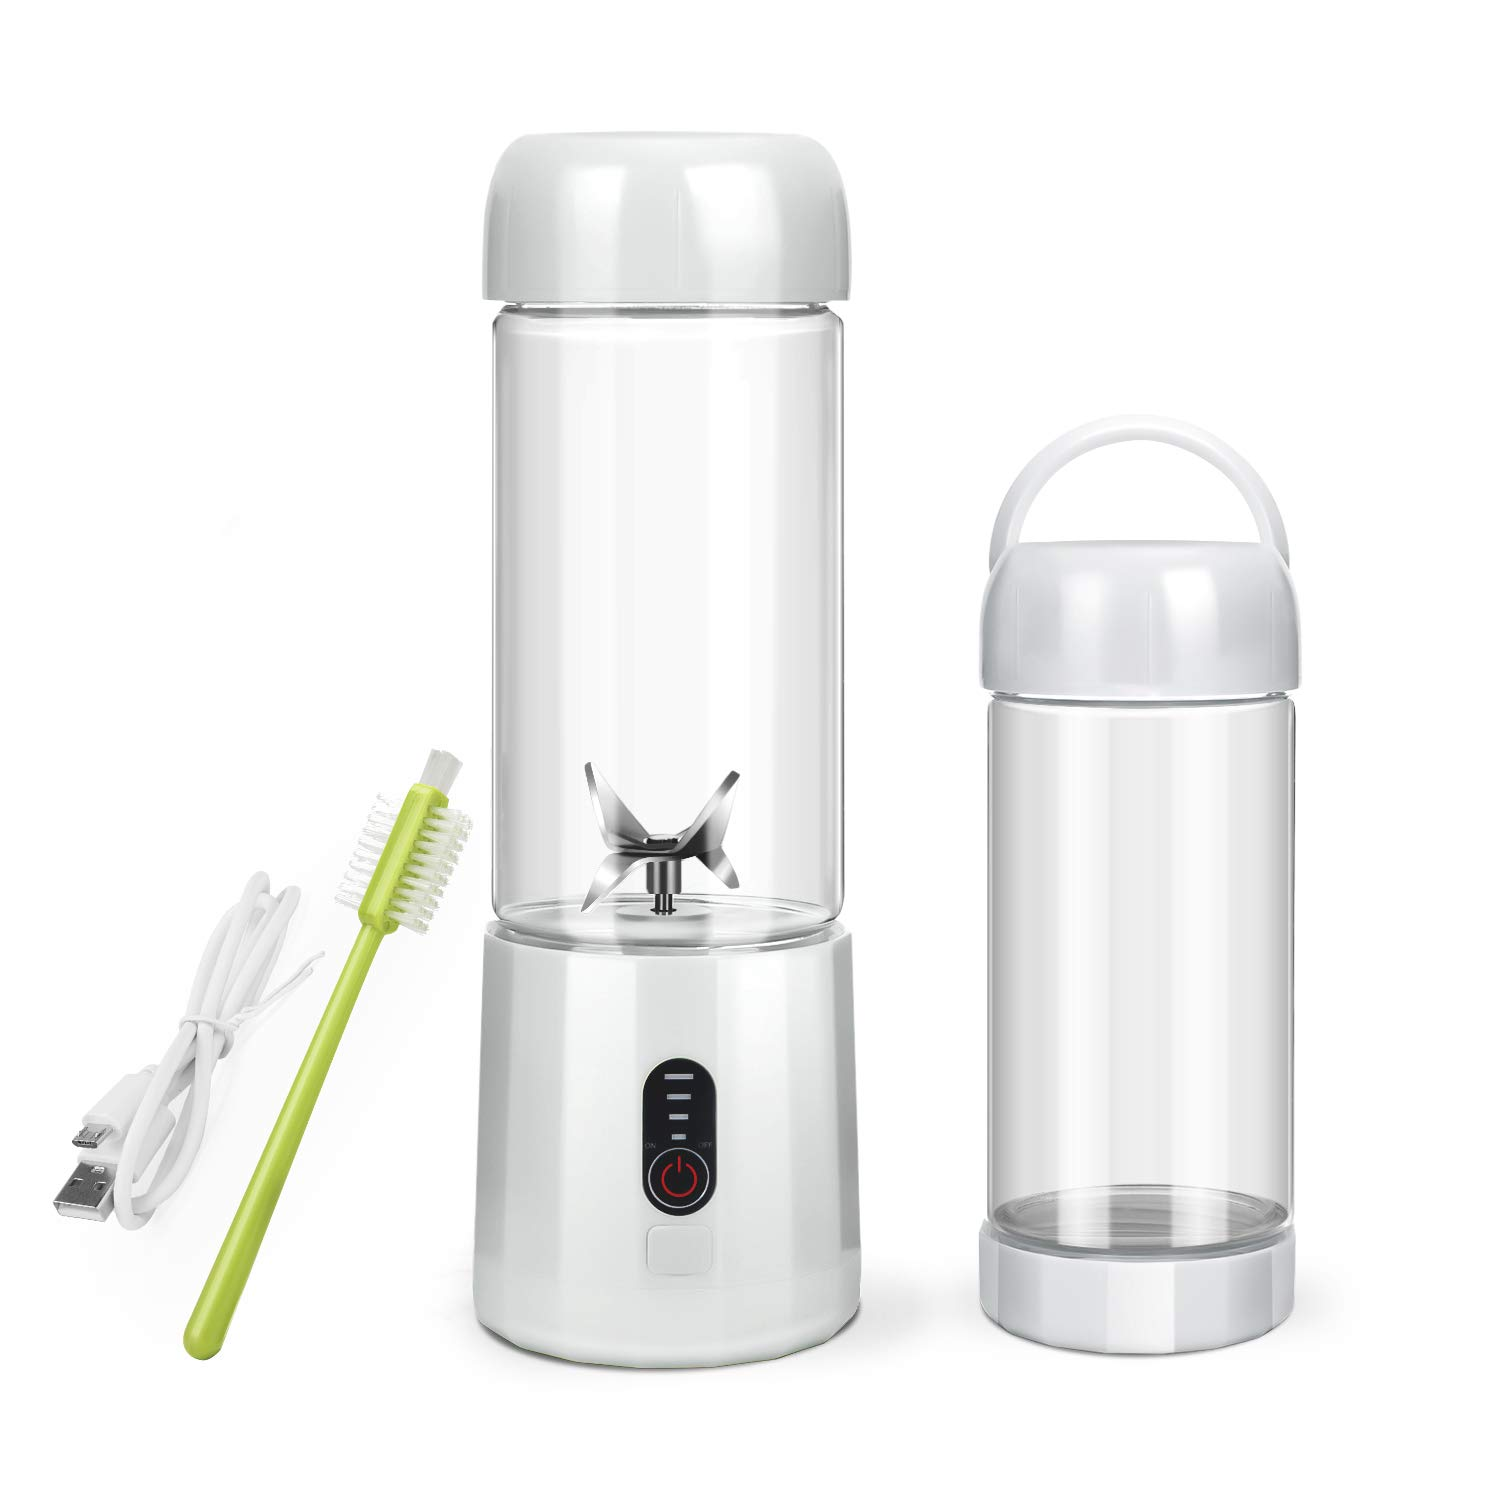 Personal Portable Blender with 480ml Travel Bottle, USB Rechargeable Single Served Smoothie Blender Six Blades in 3D Superb Mixing Personal Size Mixer Fruit Juicer Blender for Shakes and Smoothies by BZseed